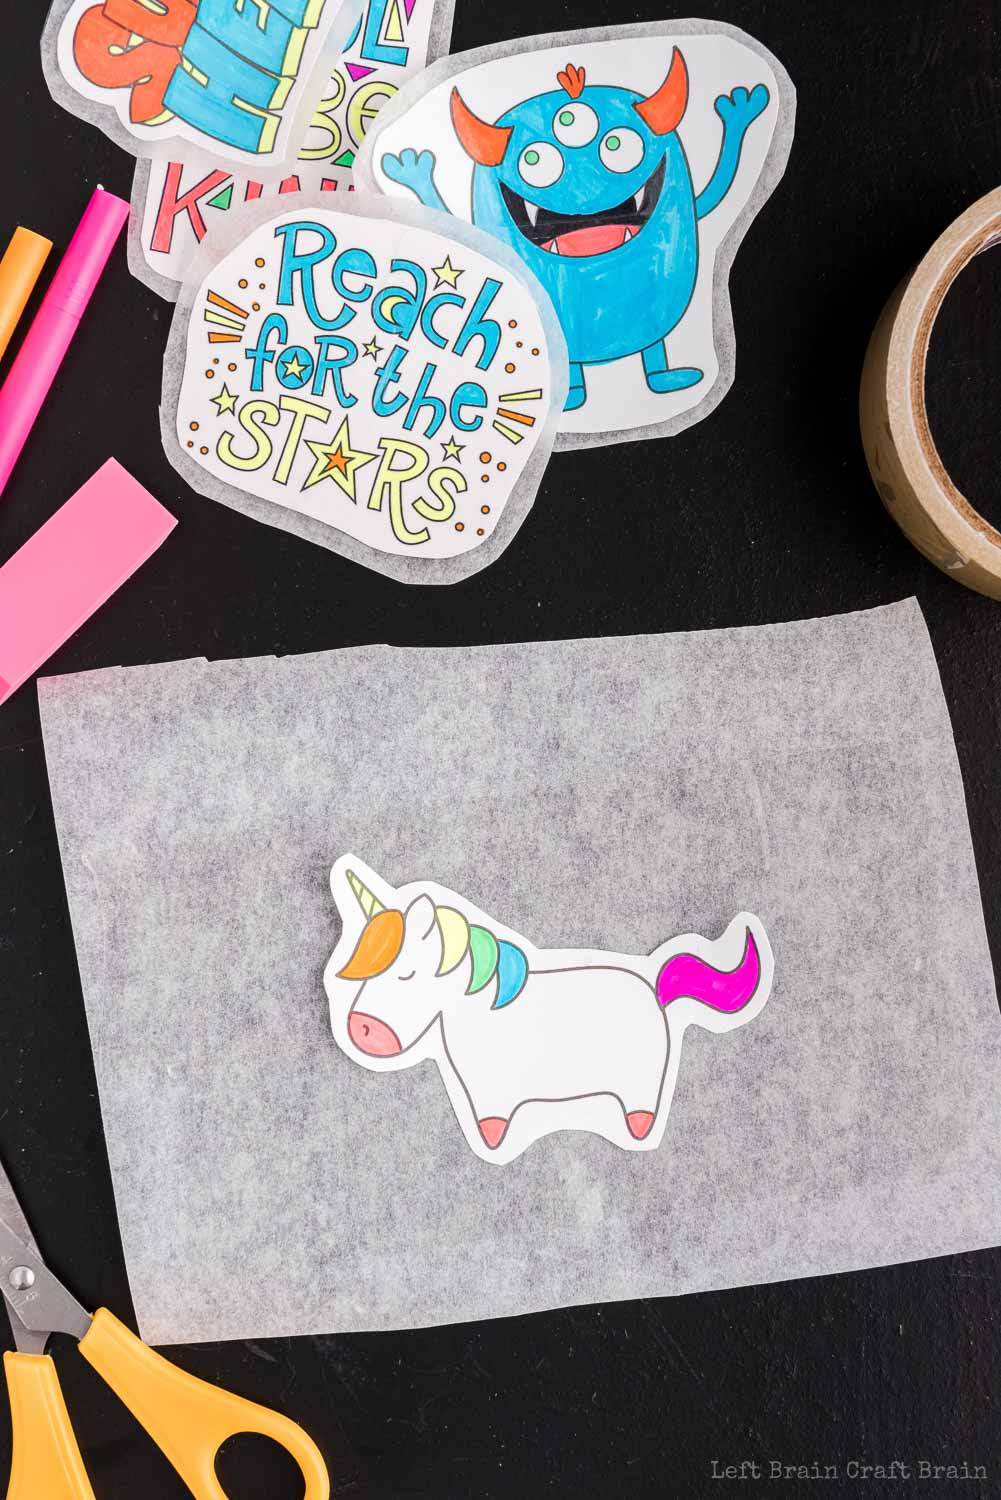 Lay design on tape - Make your own DIY stickers with a super easy process using basic supplies. Kids will love this activity. They're fun to add to presents, too.